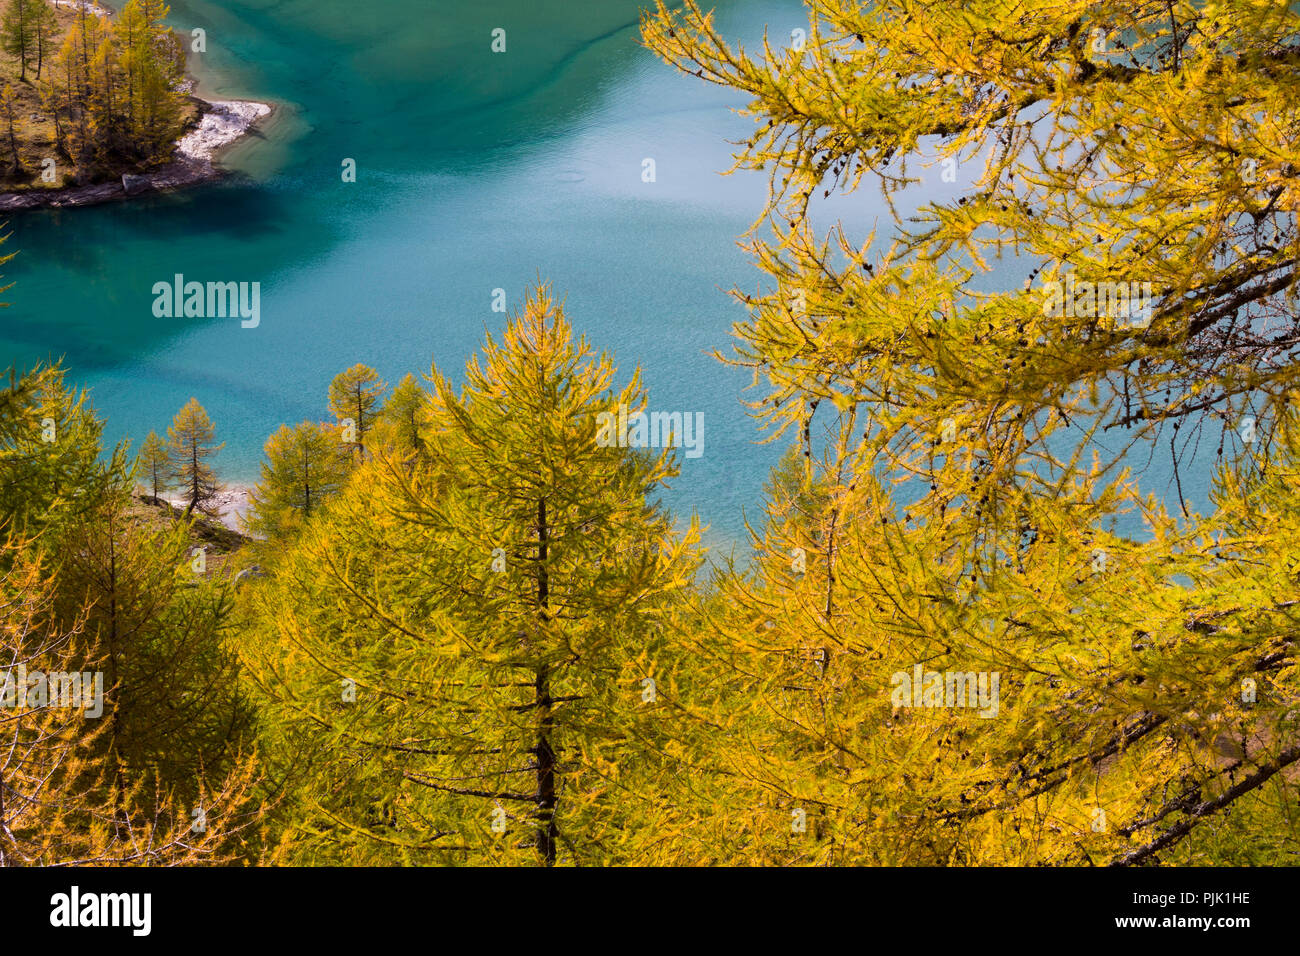 Autumn on the Alp Grüm near Poschiavo, canton of Grisons, Switzerland - Stock Image